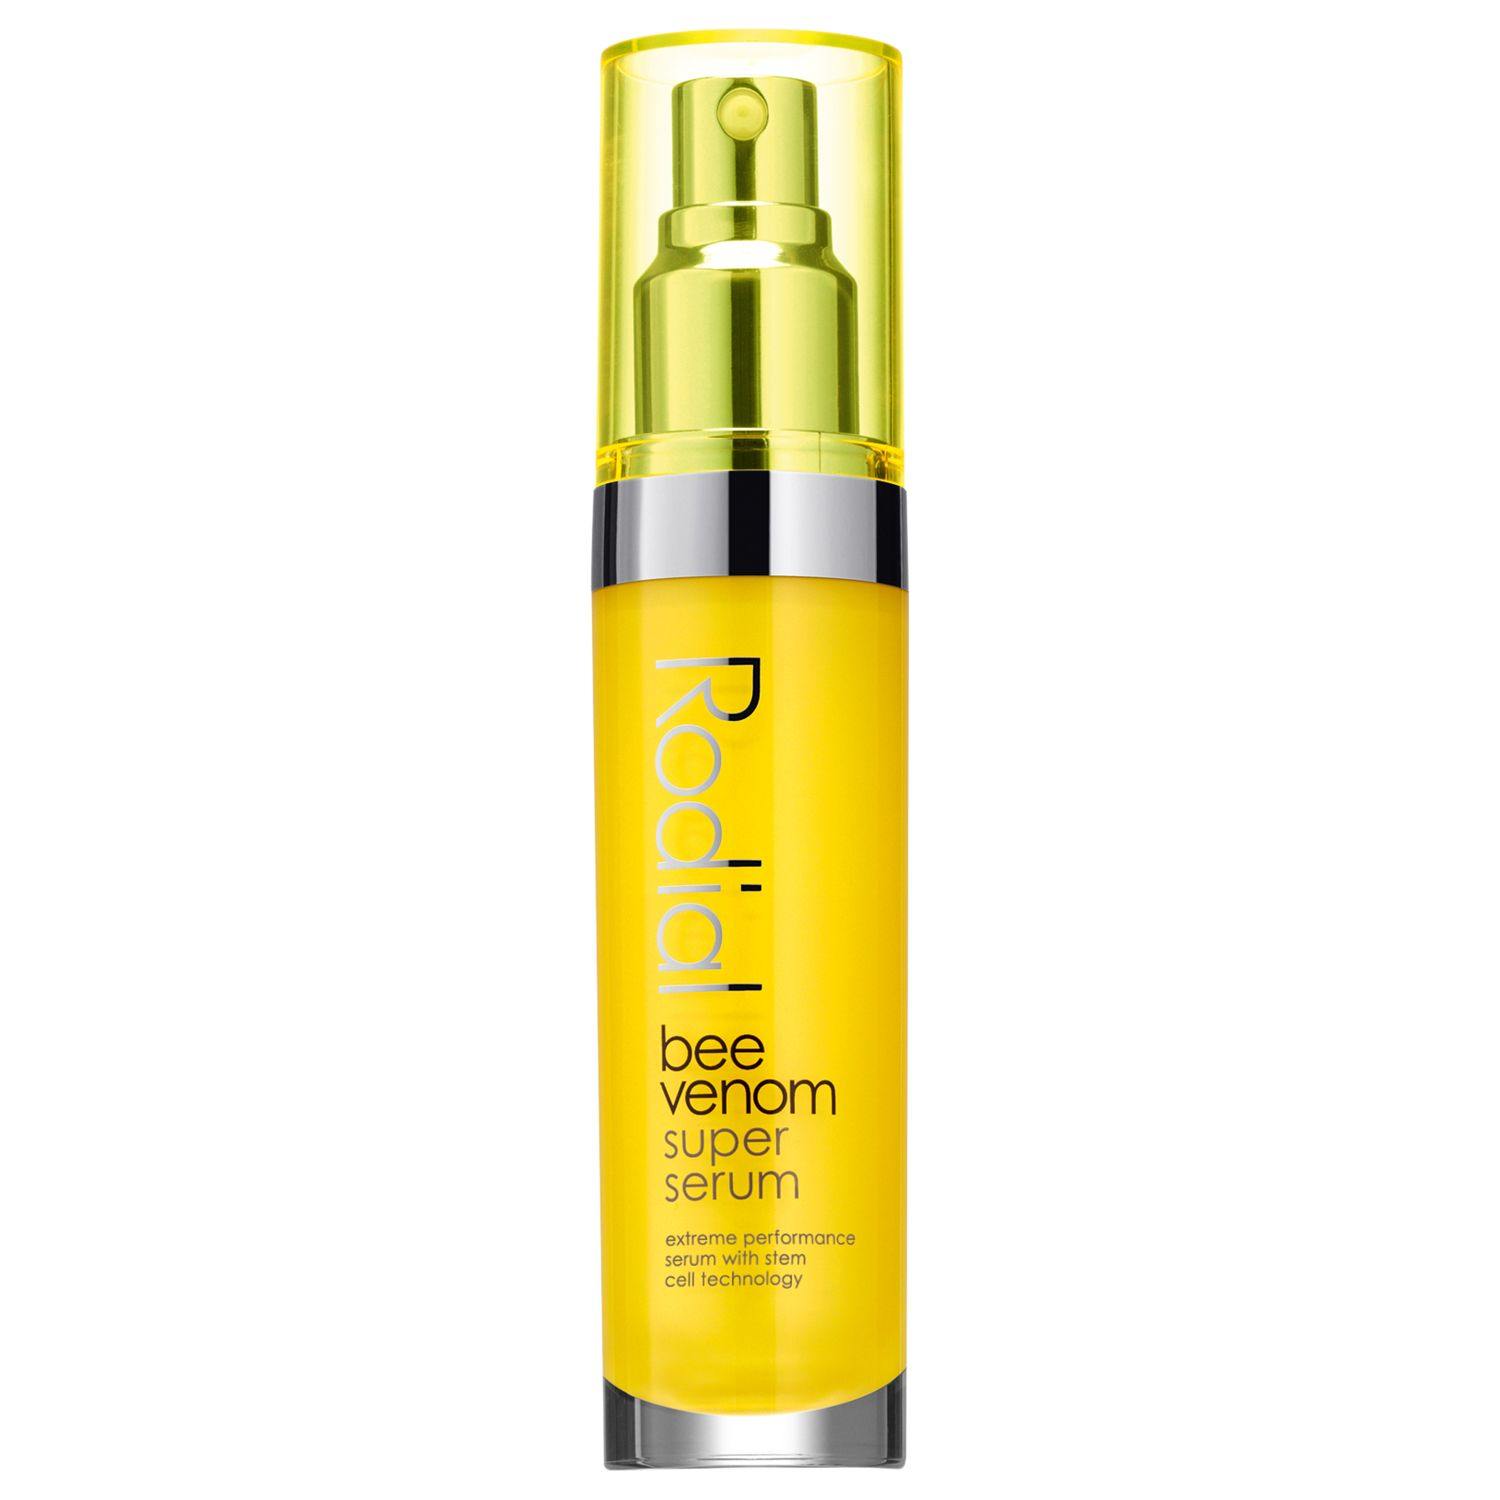 Rodial Rodial Bee Venom Super Serum, 30ml